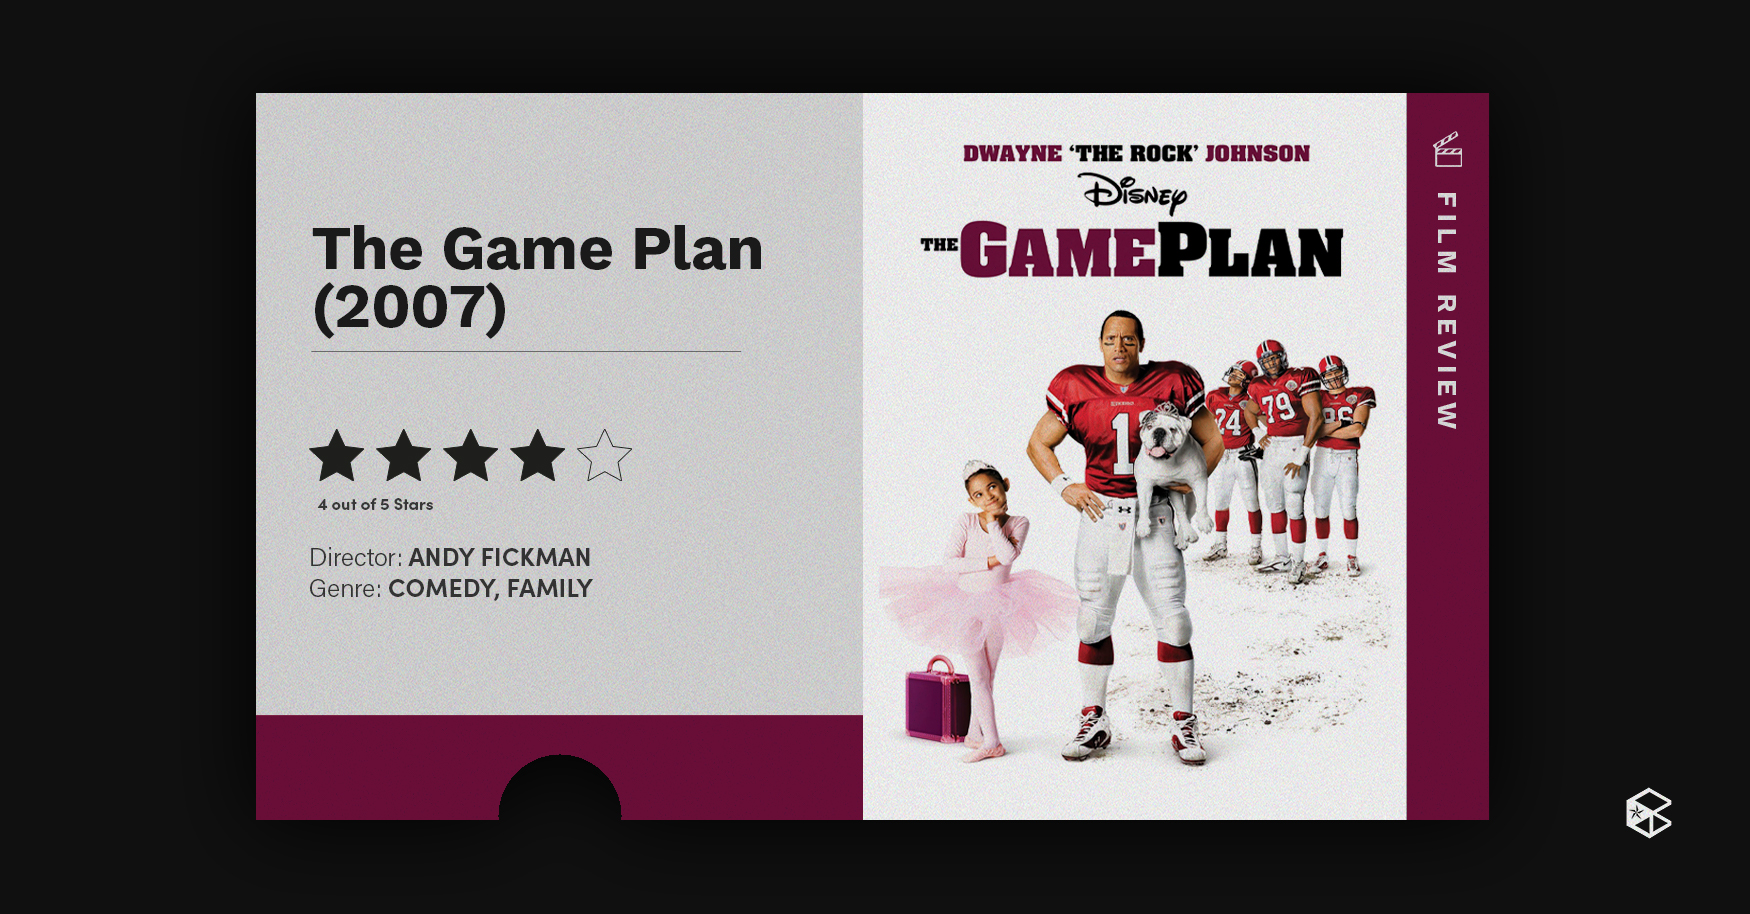 062021 [blip   Father's Day Movie Recs] The Game Plan